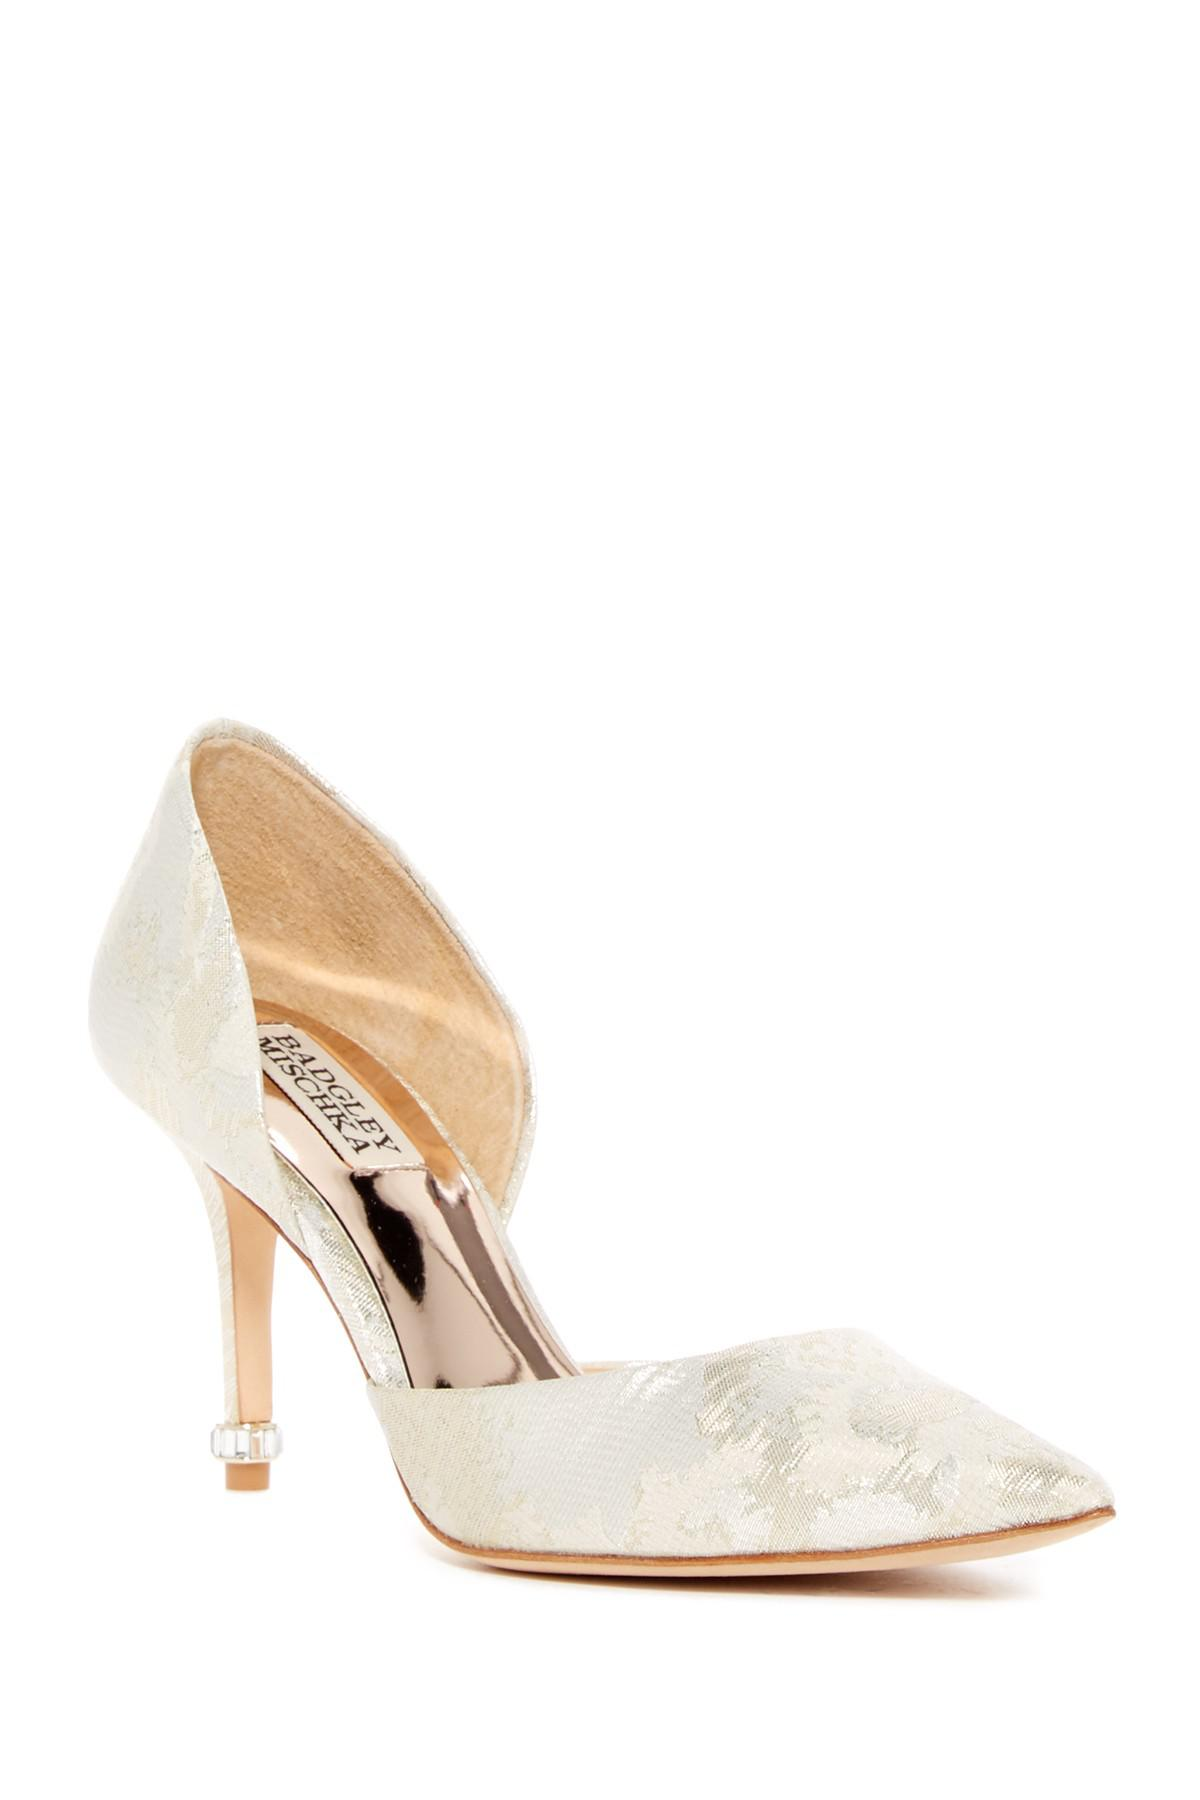 Badgley Mischka Naya d'Orsay Pumps free shipping wide range of ebay sale online for sale very cheap C1uHdAyP6